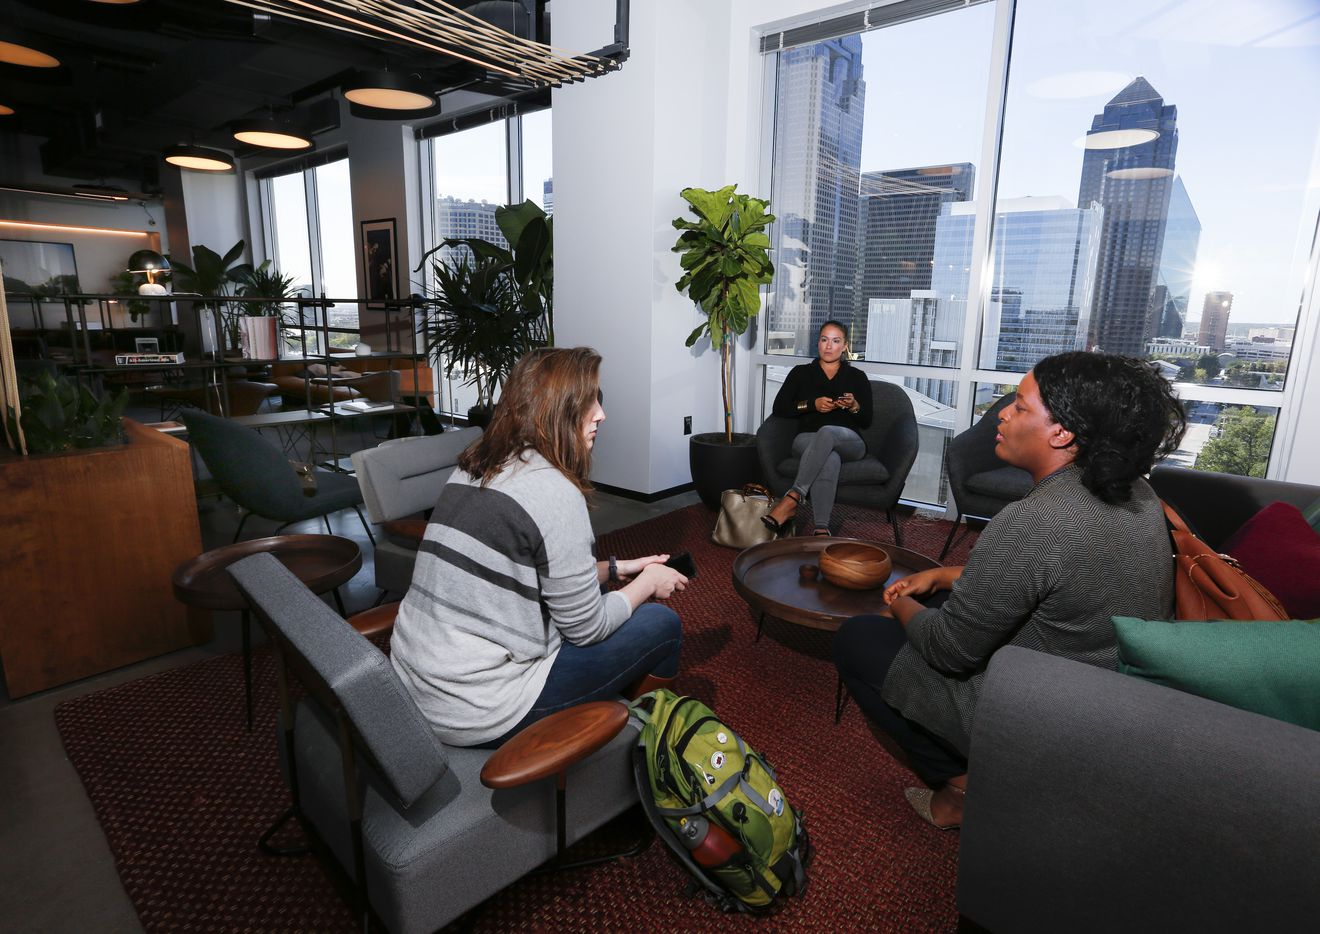 From left: Caitlin Studley, Clarisa Lindenmeyer and Jasmin Brand, all with Launch DFW, gather in one of the common areas at Industrious,  a co-working office on the ninth floor of One Arts Plaza in downtown Dallas.